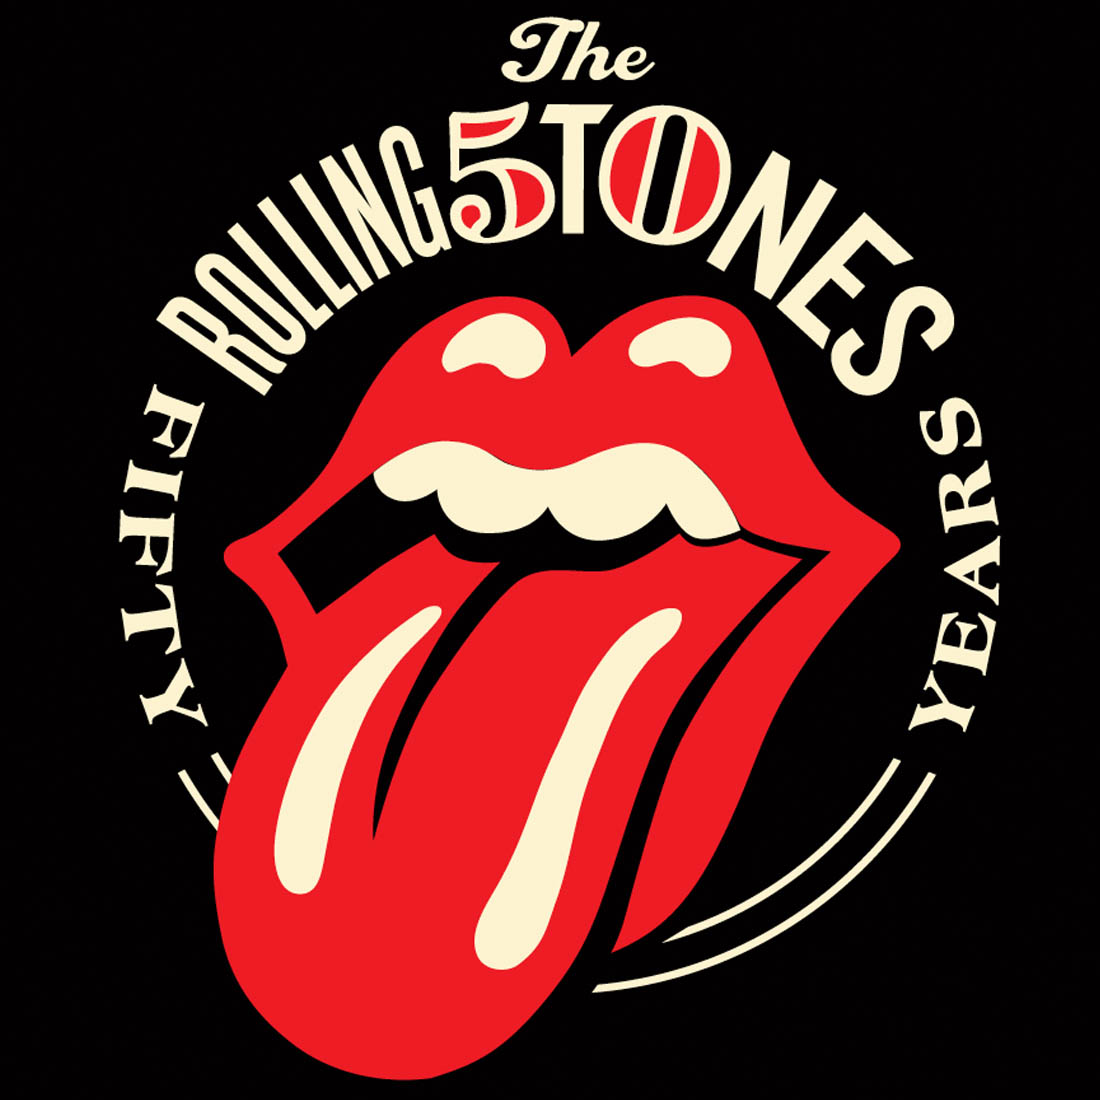 Rolling Stones logo rs 50 visual - Sister